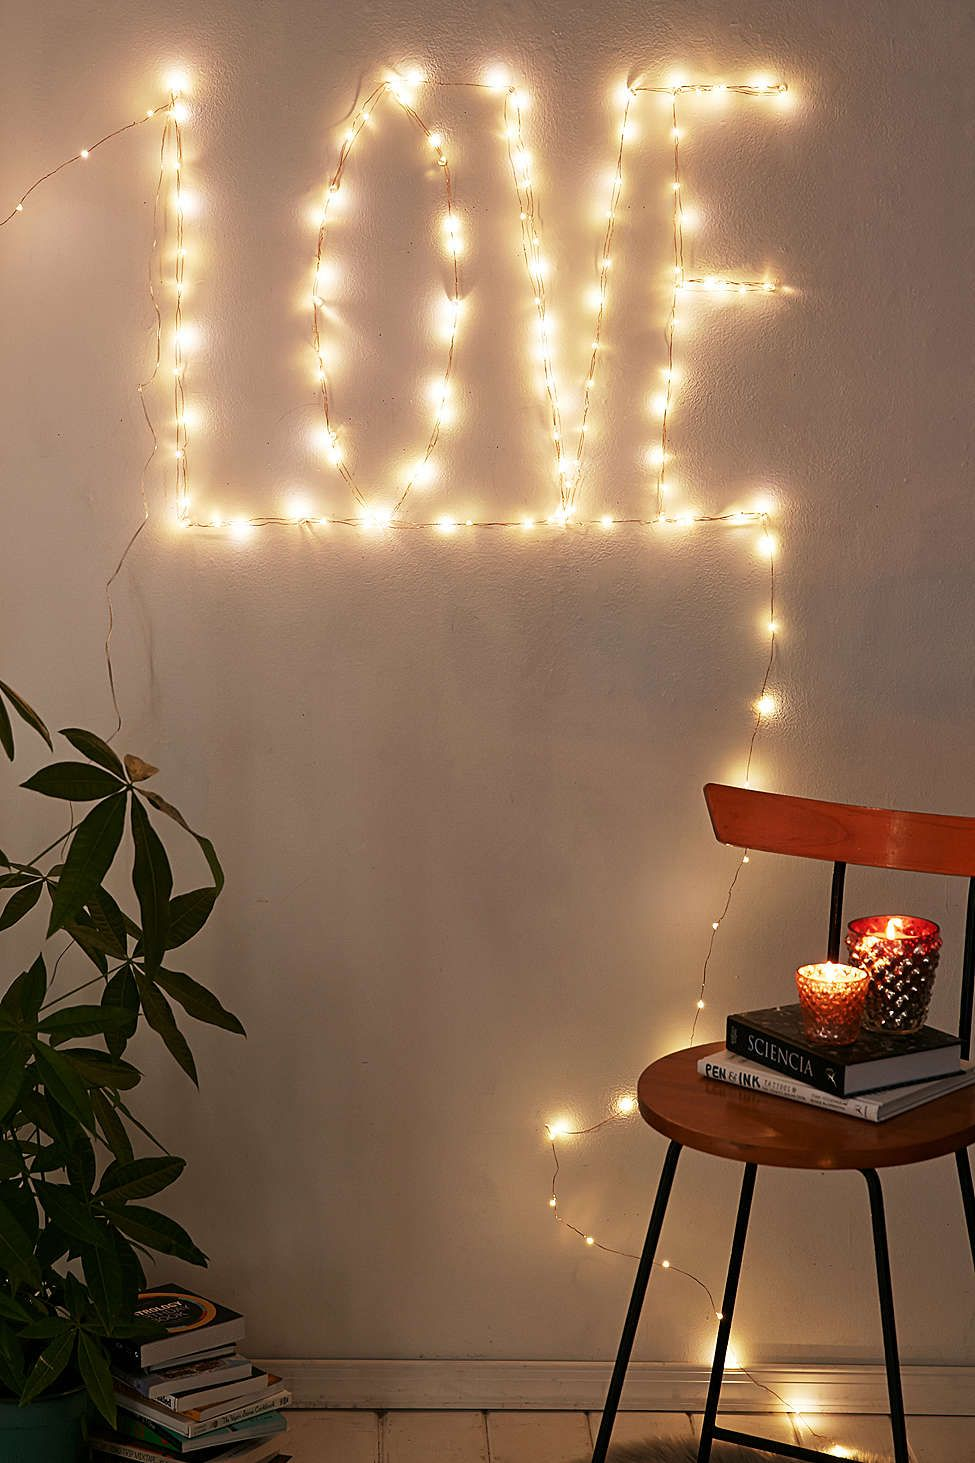 Firefly String Lights Extraordinary 8 Brilliant Ways To Decorate With String Lights  Fireflies Lights Decorating Design